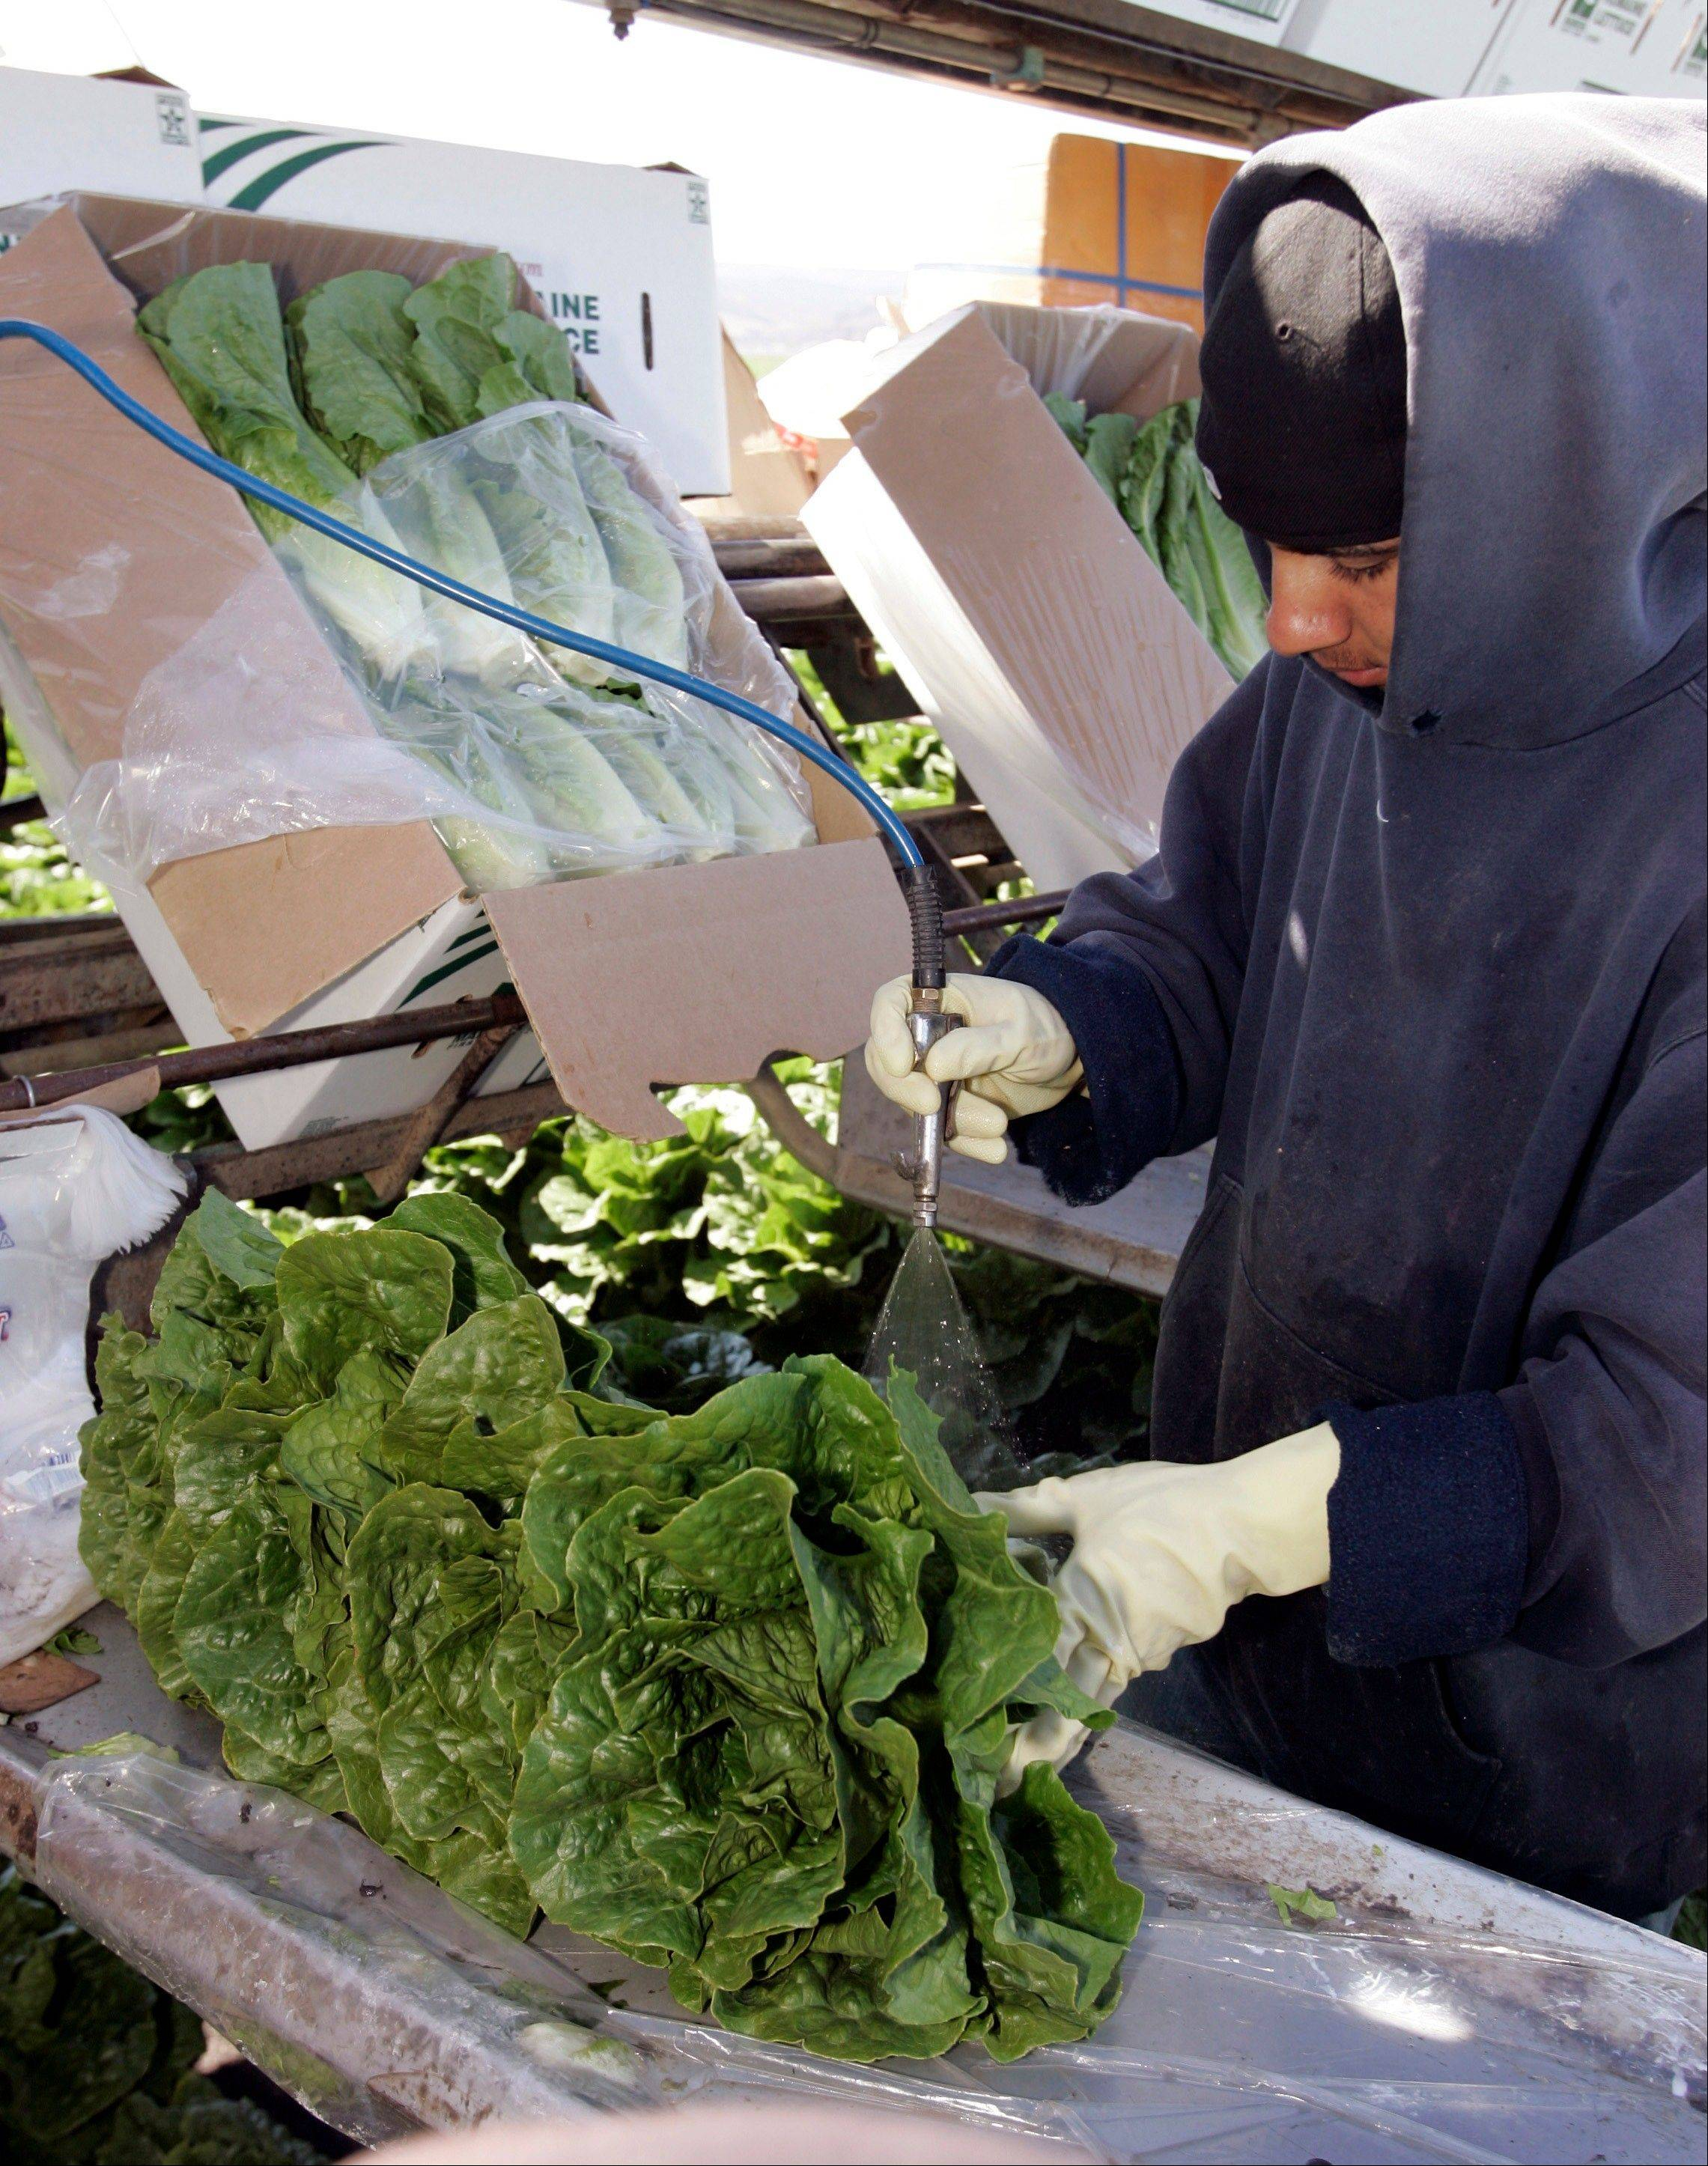 A lettuce worker washes romaine lettuce in Salinas, Calif. Leafy green vegetables were the leading source of food poisoning over an 11-year period, federal health officials say.